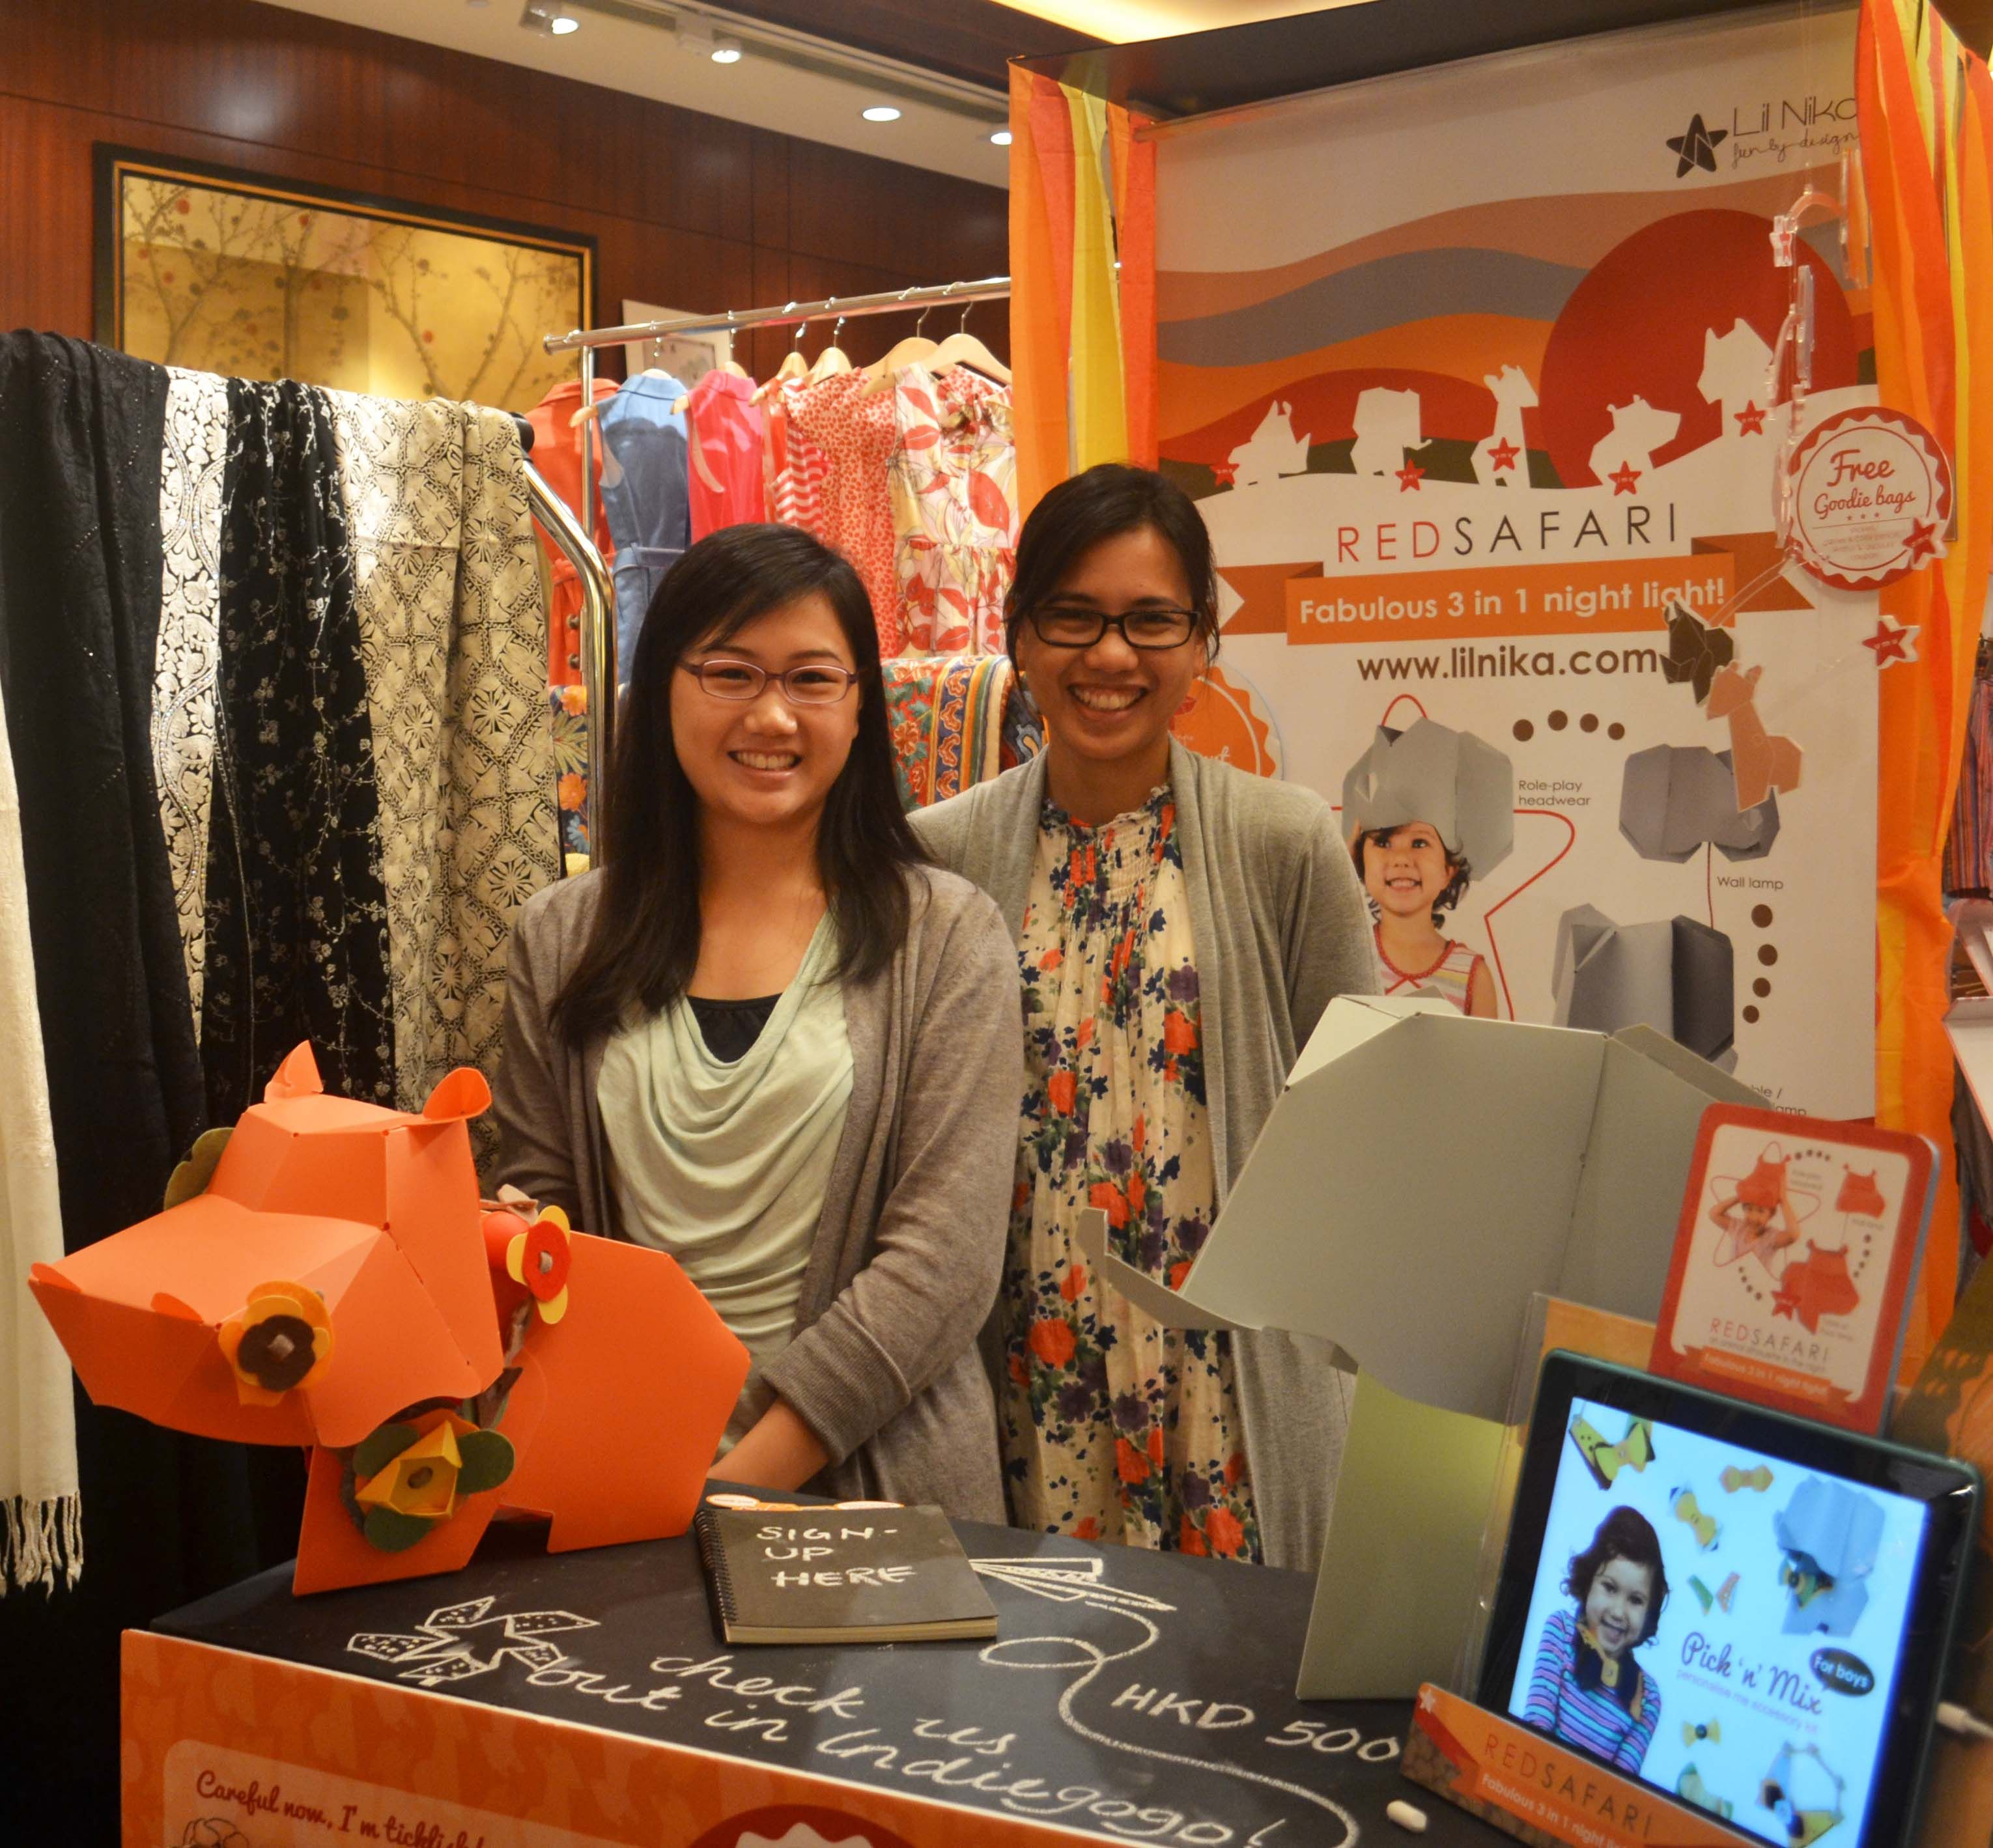 19 May, Lil Nika at the Prestige Fair 2014 @ Conrad, Hong Kong. We want to thank everyone that came over to our booth, we always appreciate good feedback and showers of praises :D